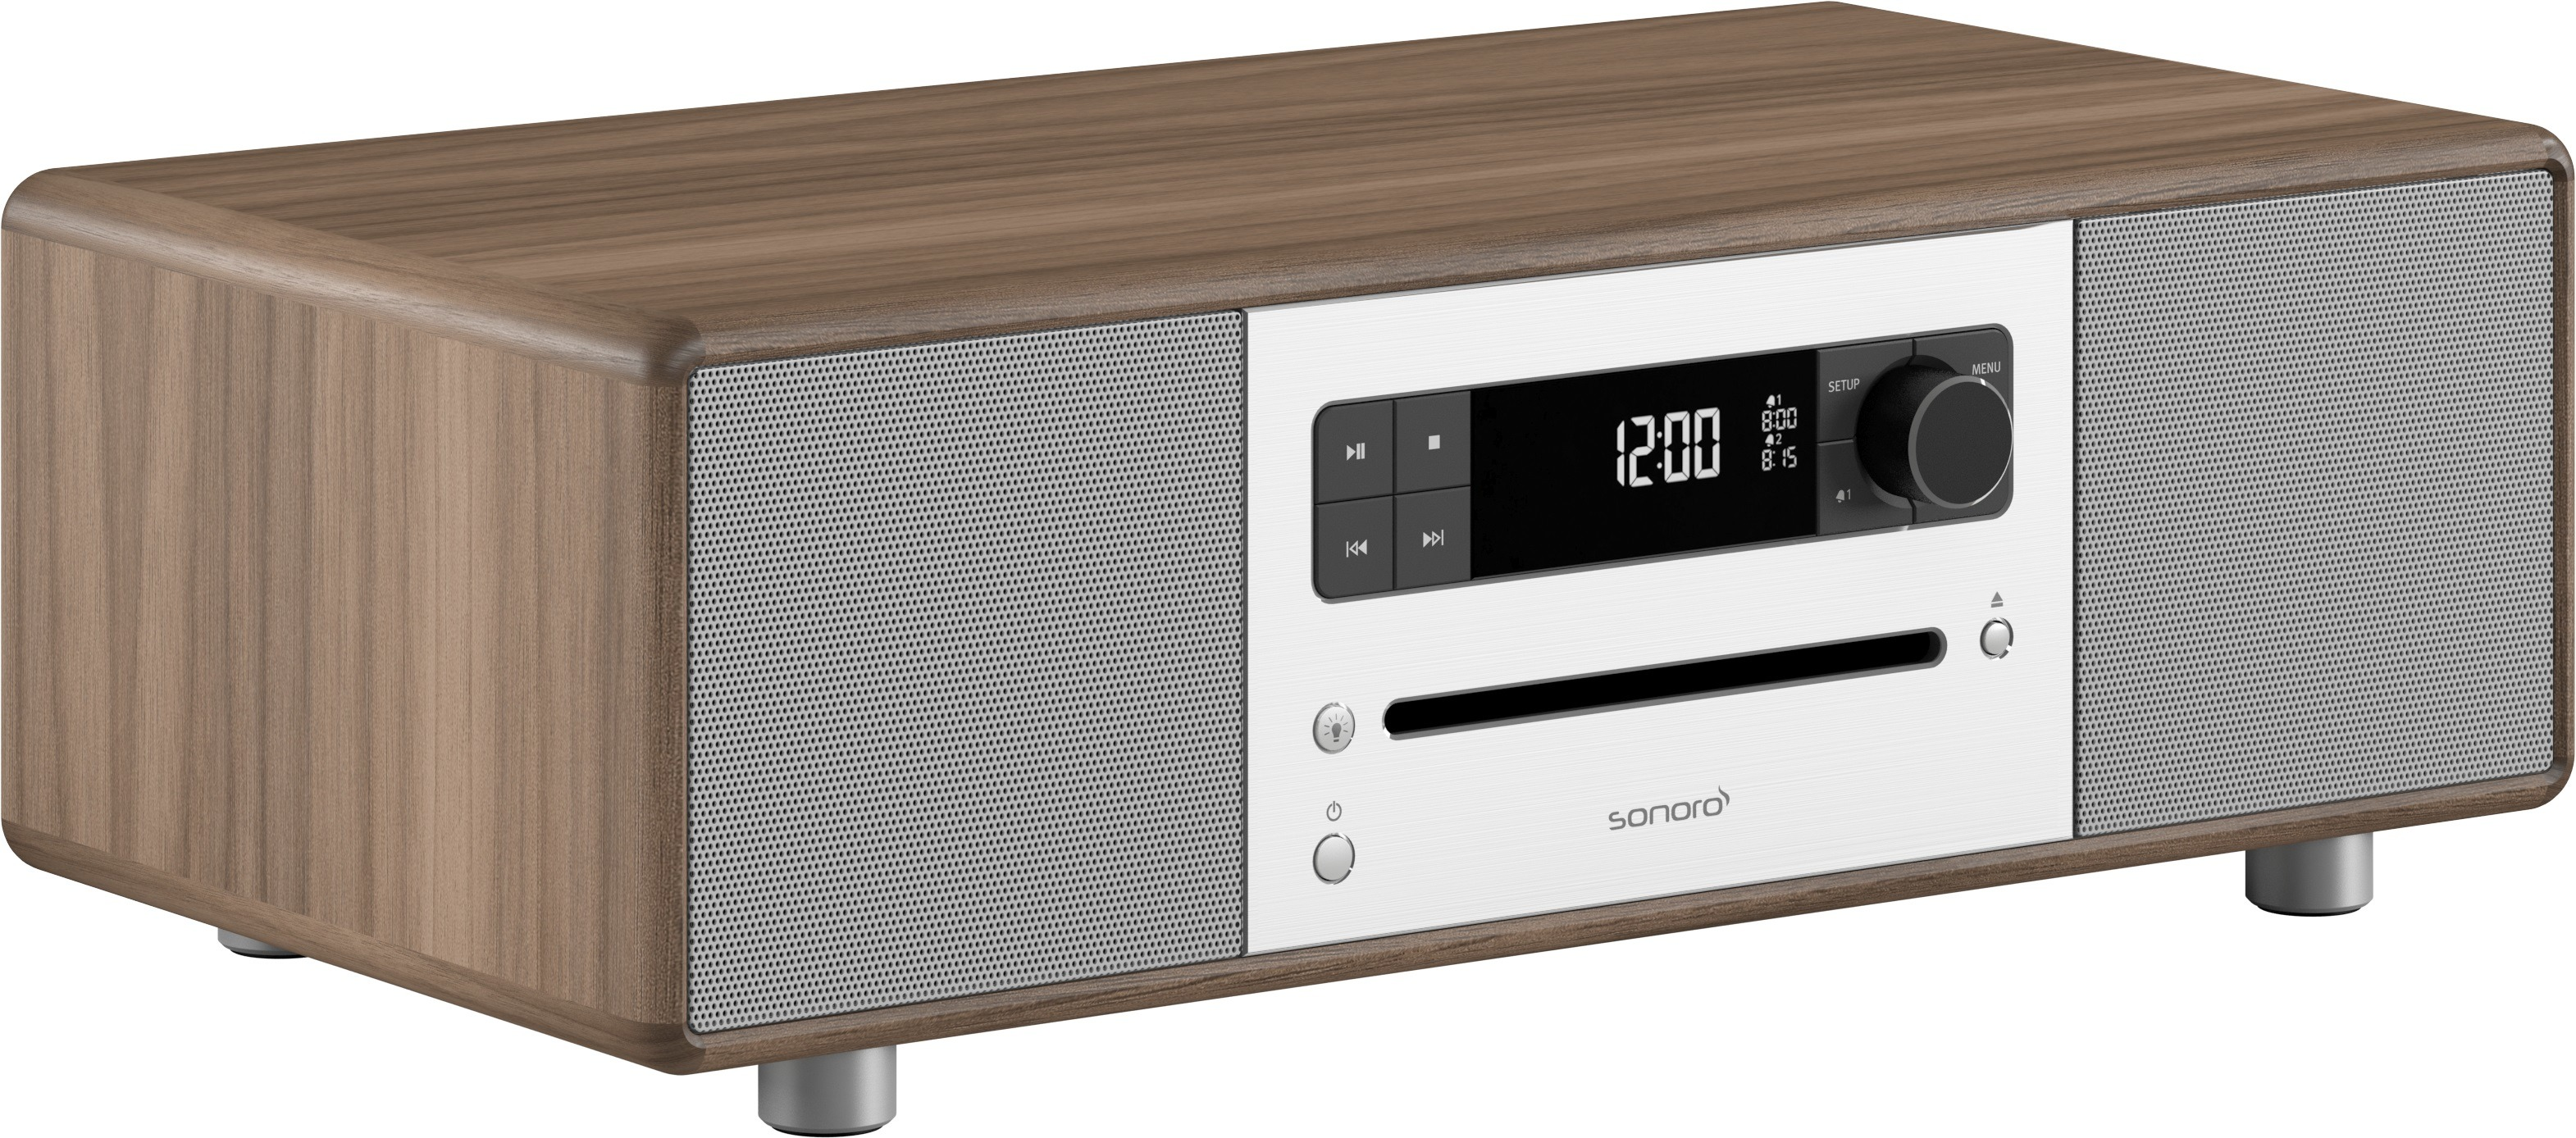 Sonoro stereo set Stereo 320 walnoot